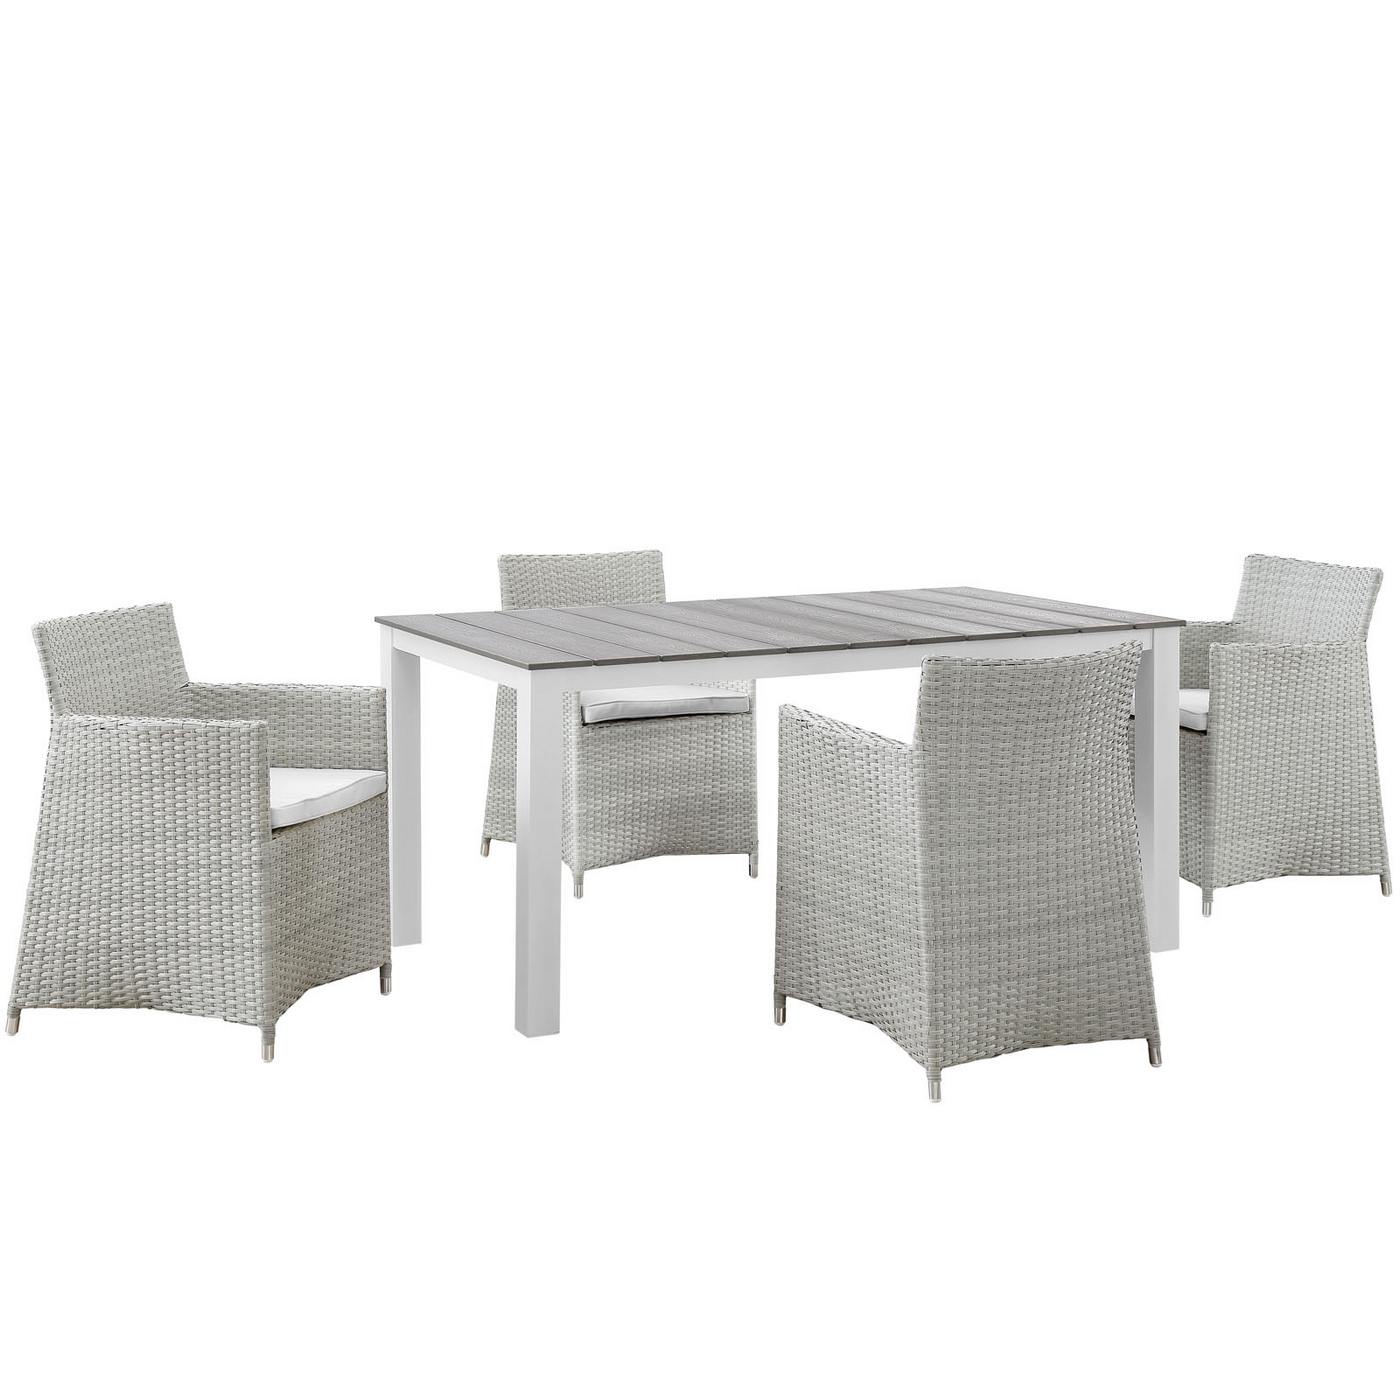 Junction Contemporary 5pc Outdoor Patio Wicker Dining Set Gray White